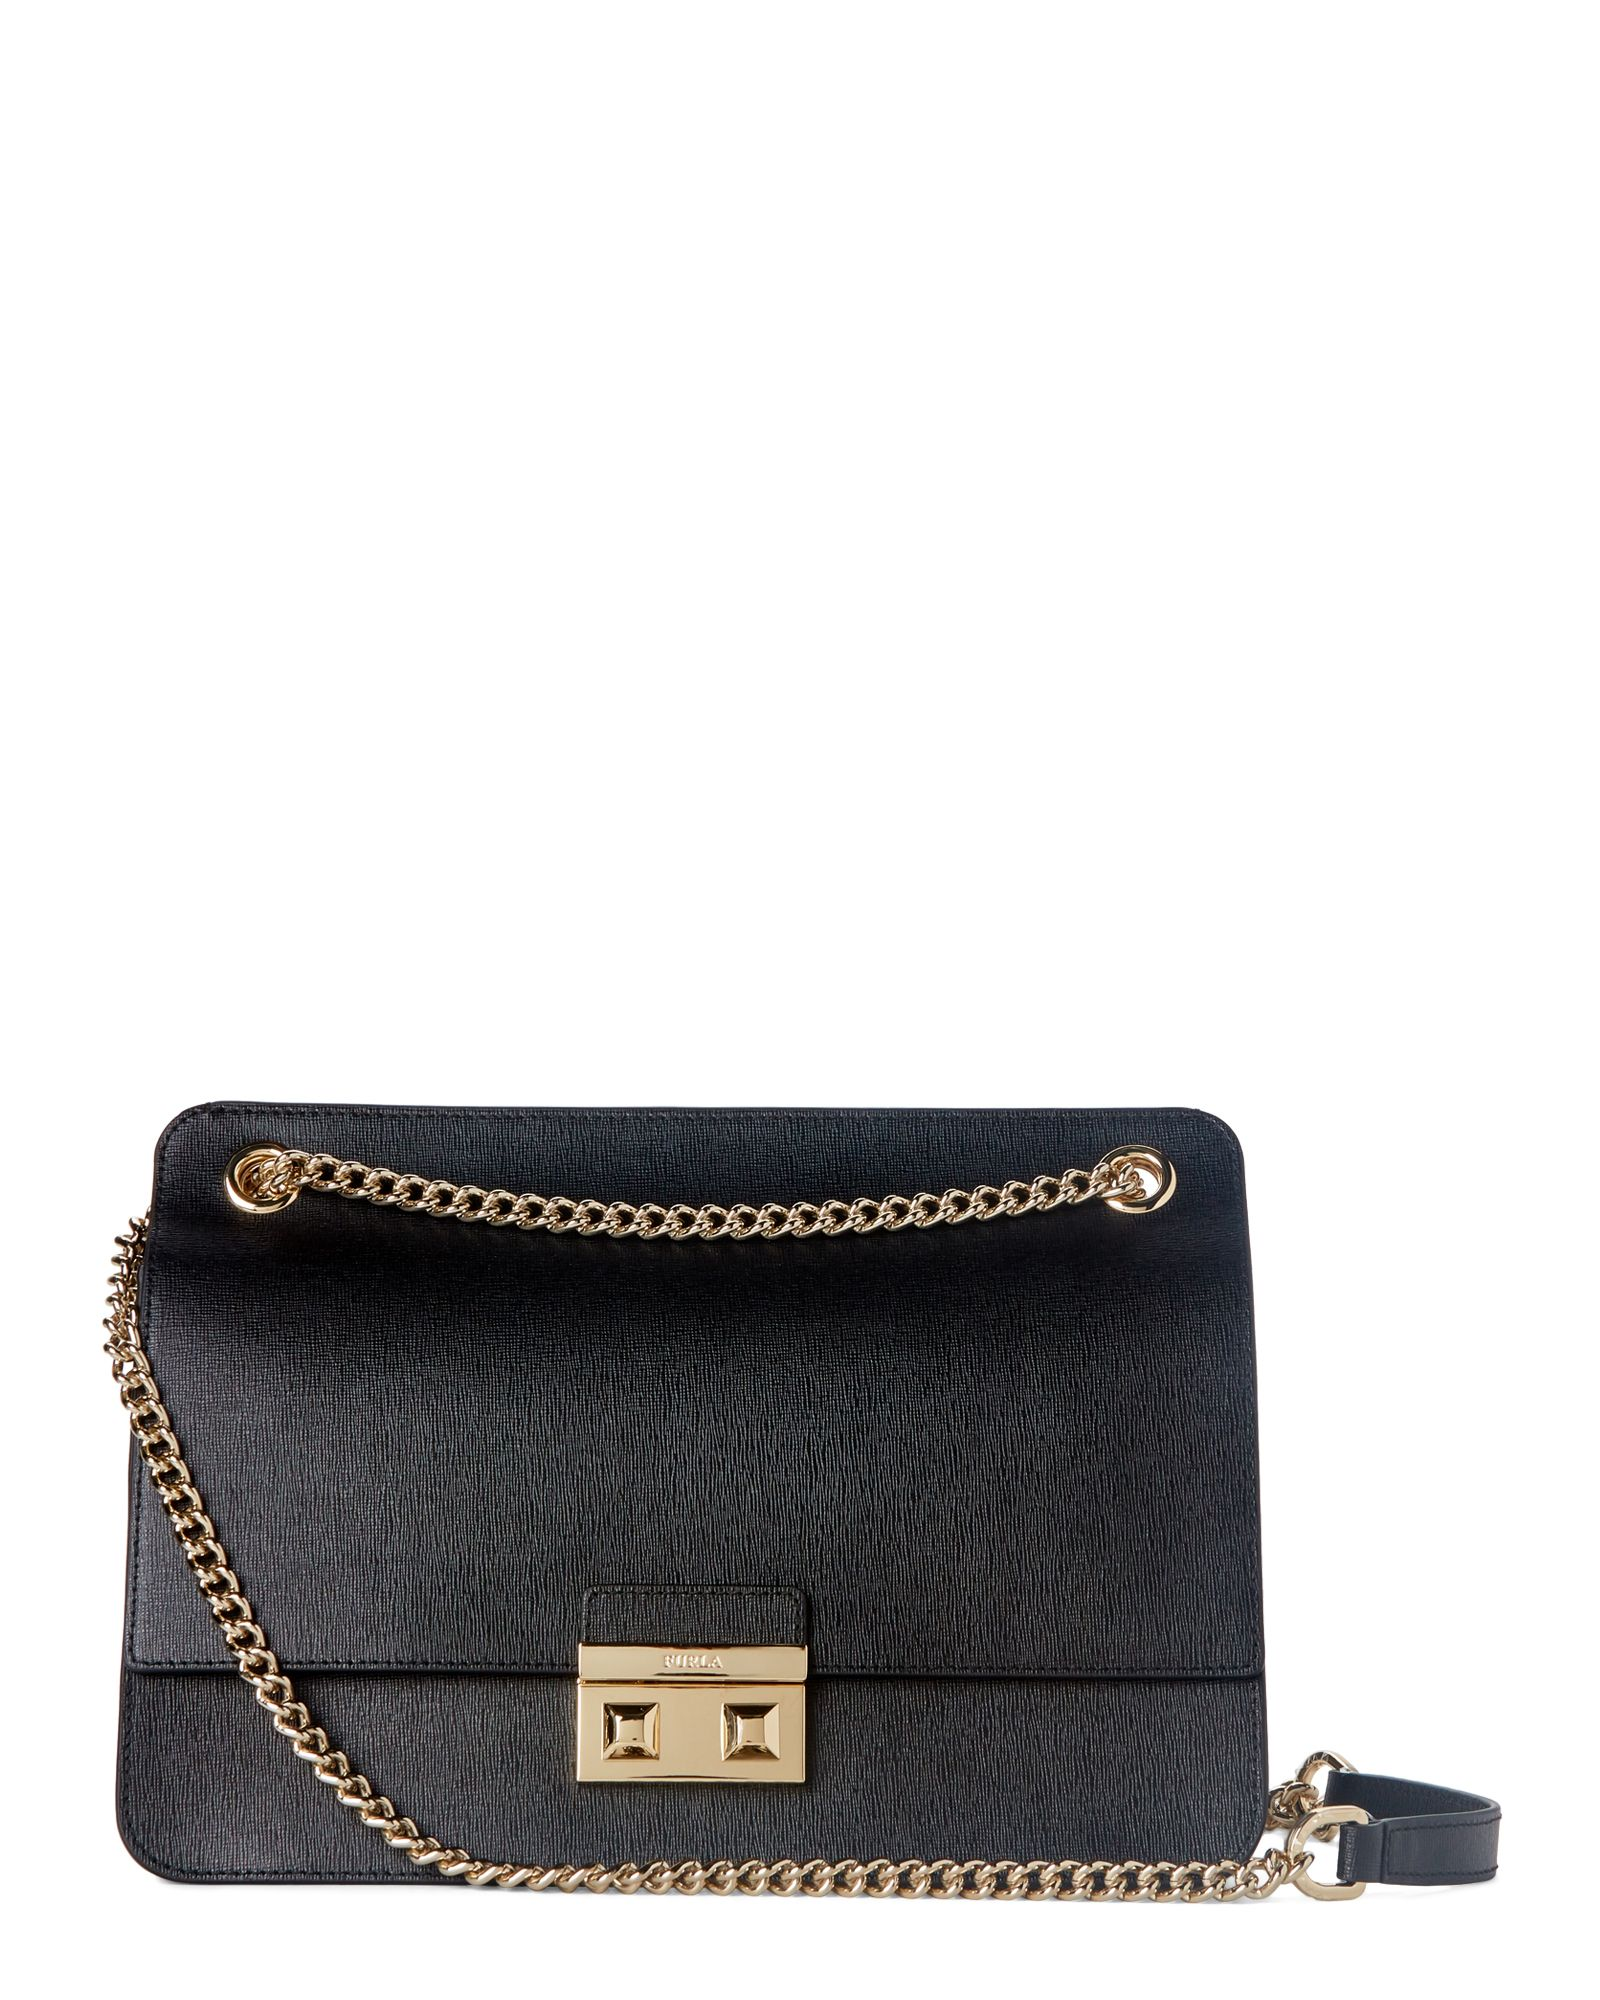 197840bf228361 Black Bella Saffiano Medium Crossbody in 2019 | *Apparel ...